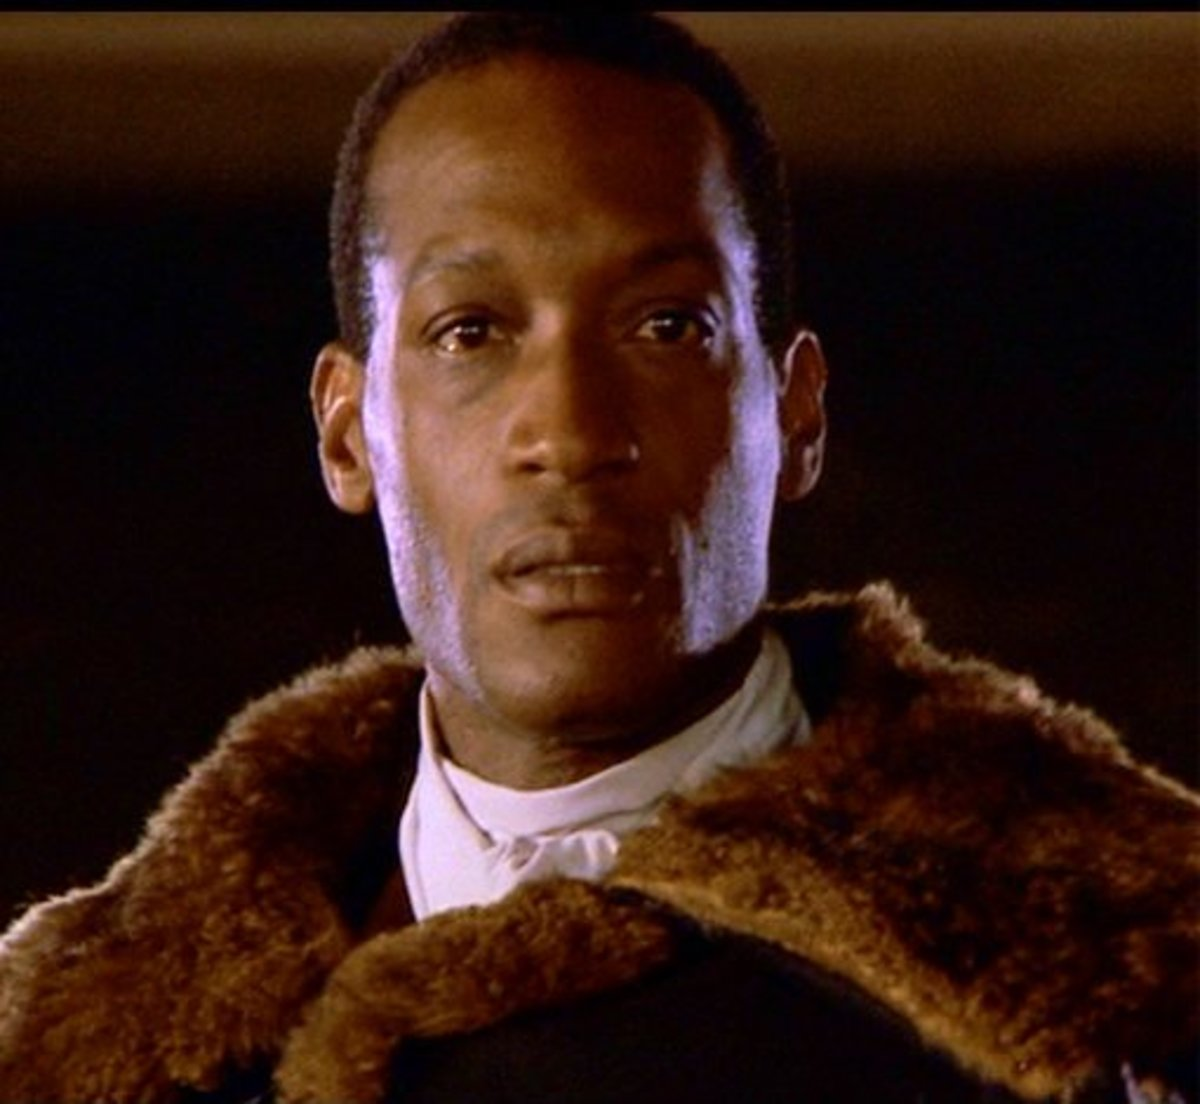 Tony Todd captured Barker's Candyman with elegence and fear.